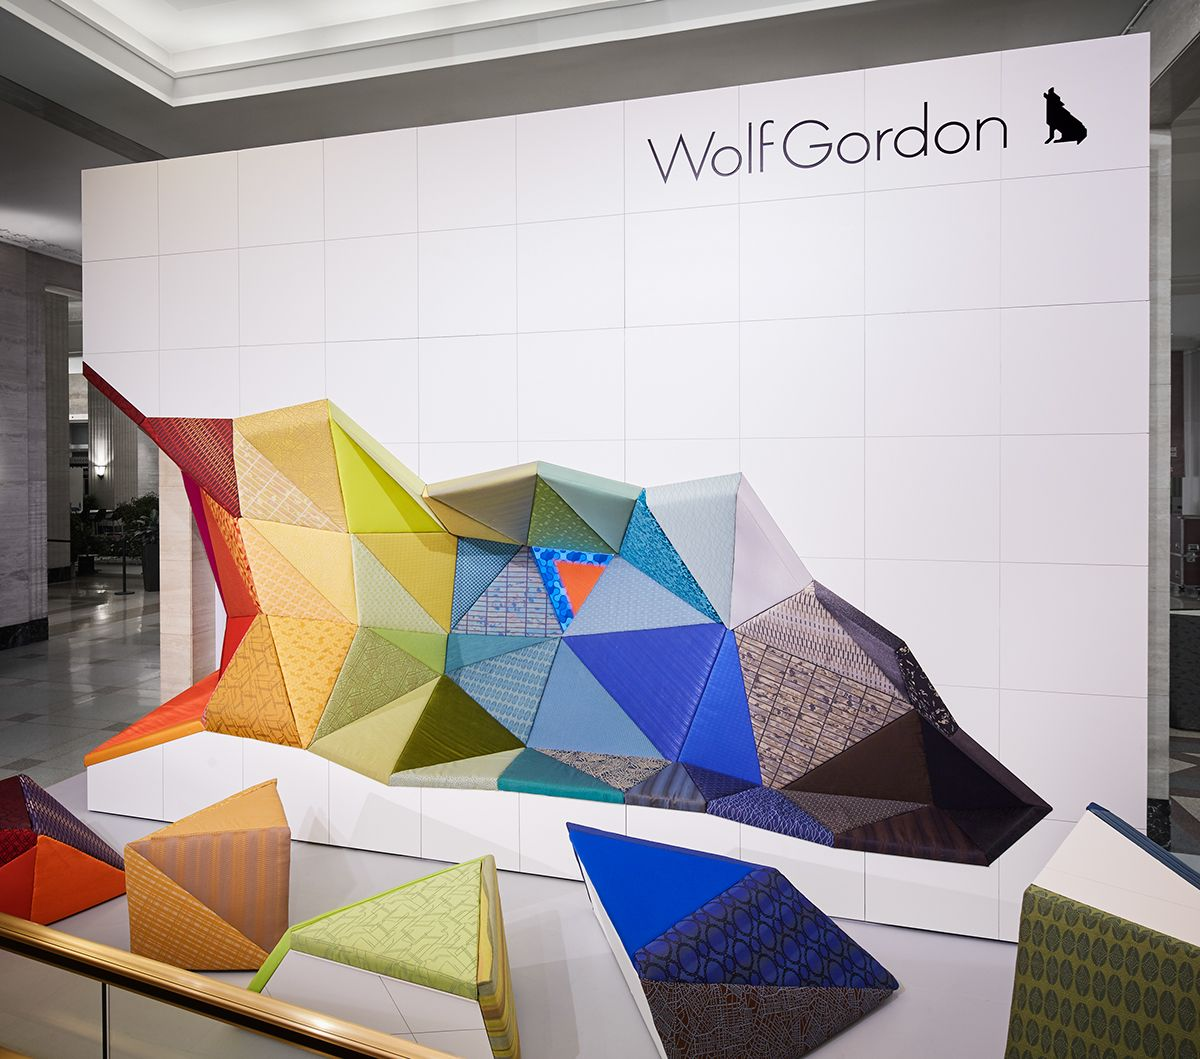 Office_Excavate Puts The Emphasis On Wolf-Gordon's